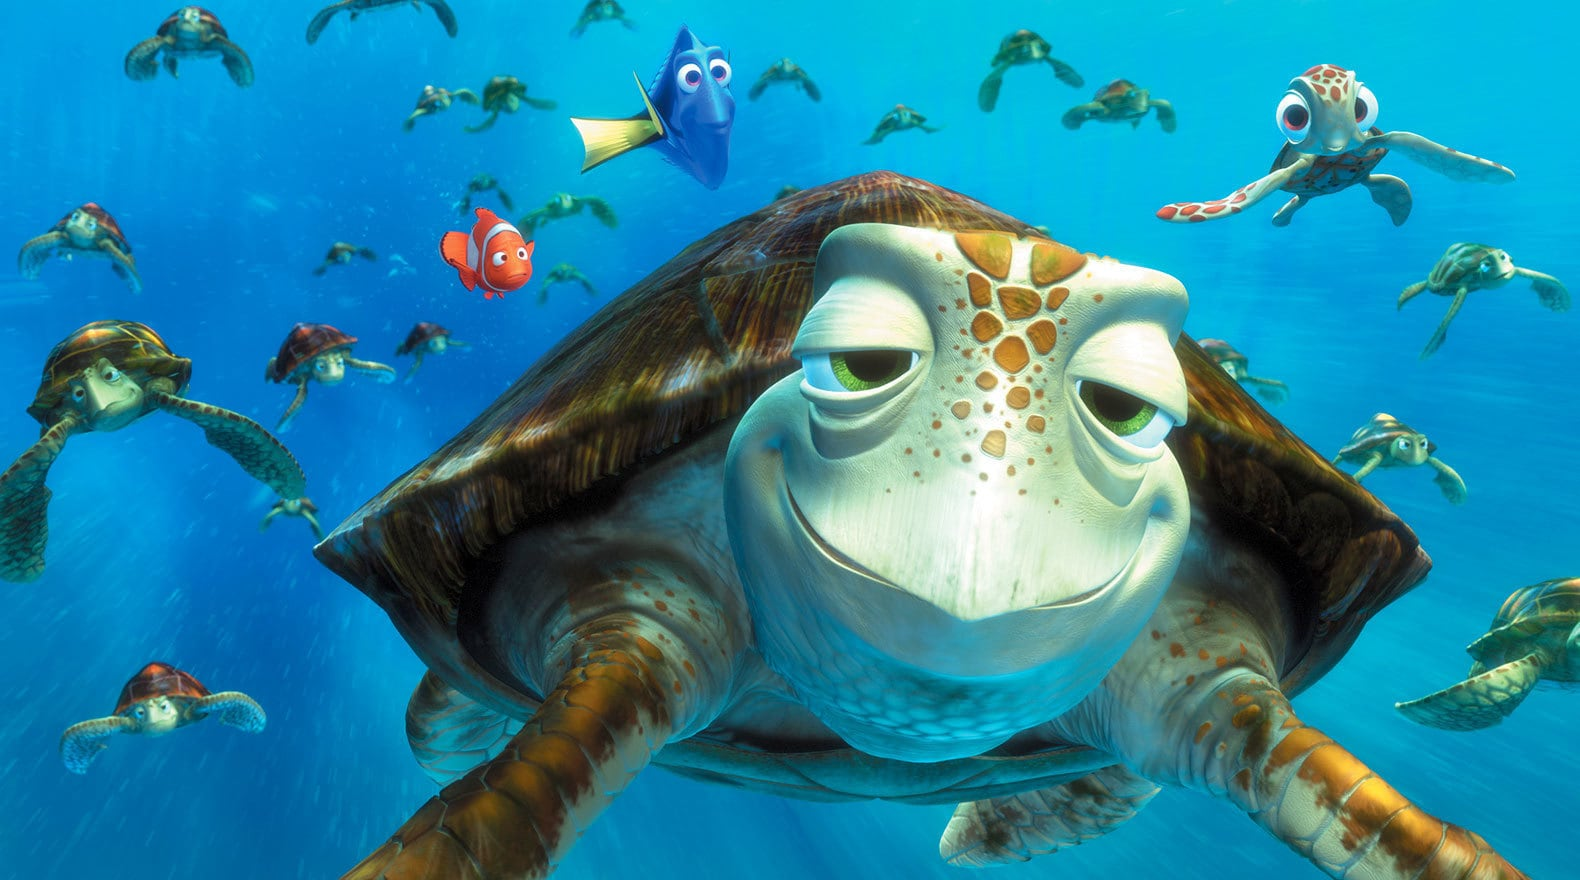 """Characters Crush and Squirt in the EAC with other turtles, Dory and and Marlin in the background in """"Finding Nemo"""""""